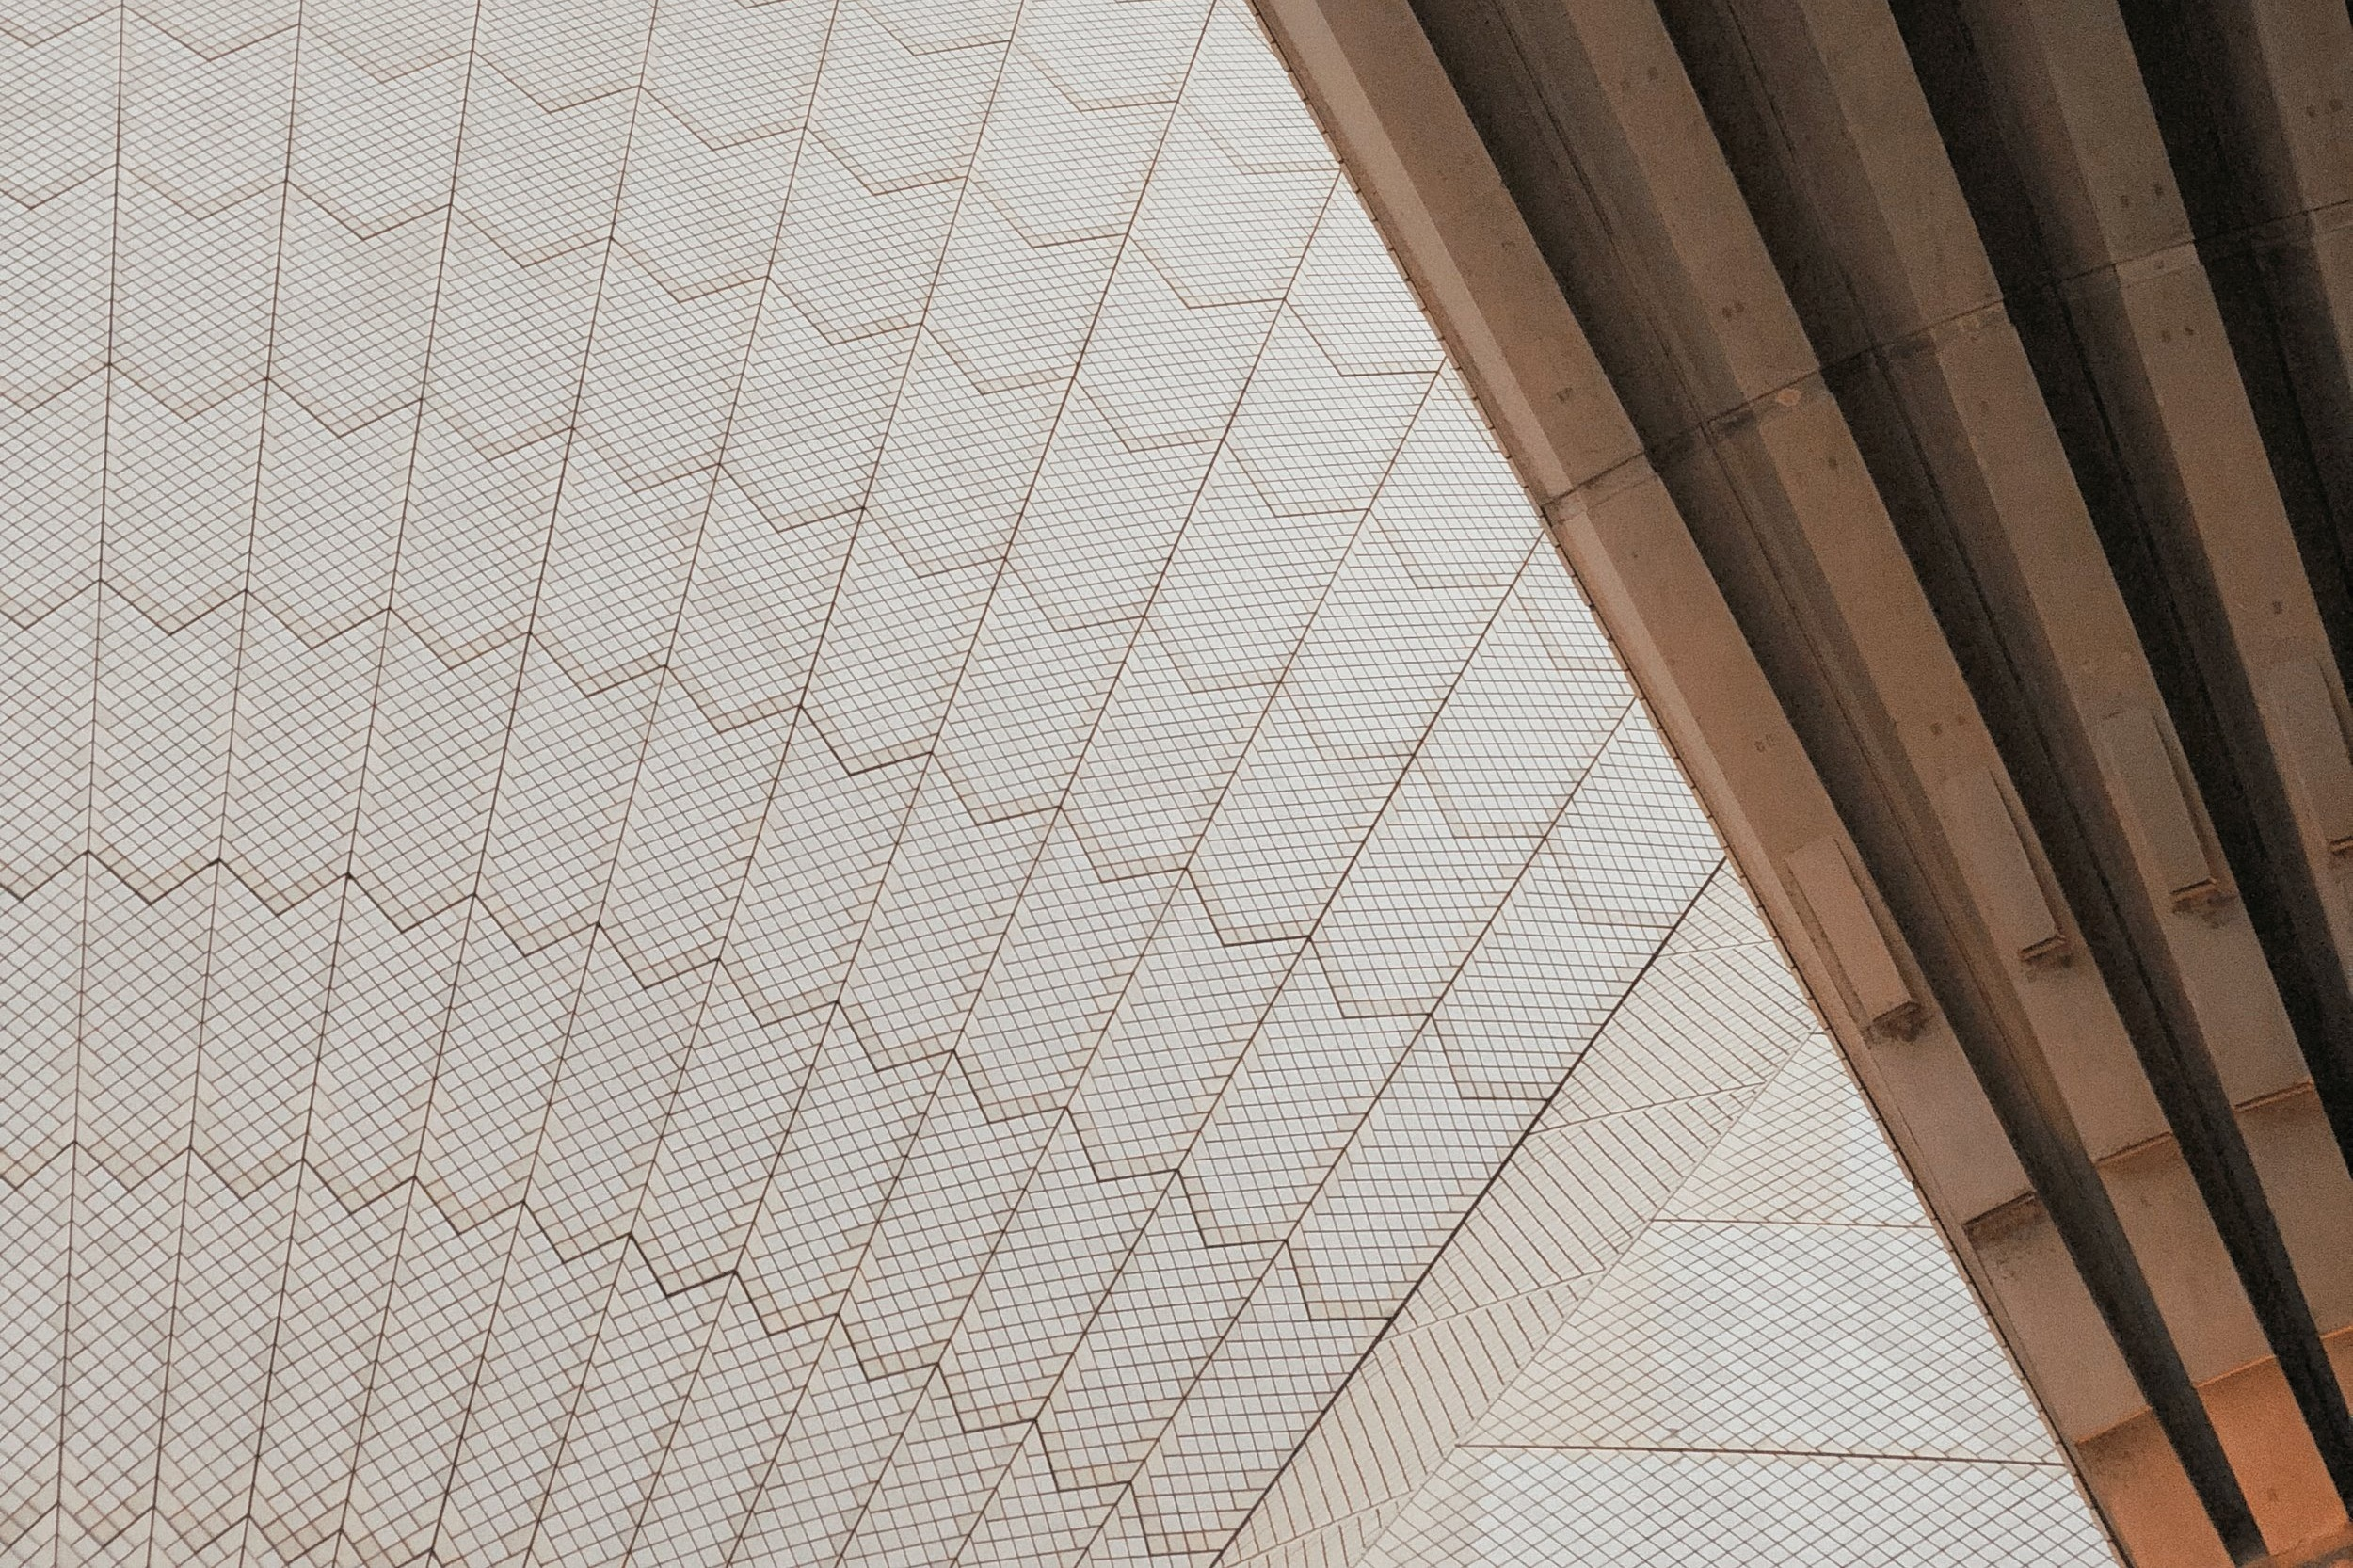 "Opera House - Architecture, TravelSydney, AustraliaFusing ancient and modernist influences, and situated on a site sacred to the Gadigal people for thousands of years, the sculptural elegance of the Sydney Opera House has made it one of the symbols of twentieth century architecture - a building that, to quote US architect Frank Gehry, ""changed the image of an entire country."